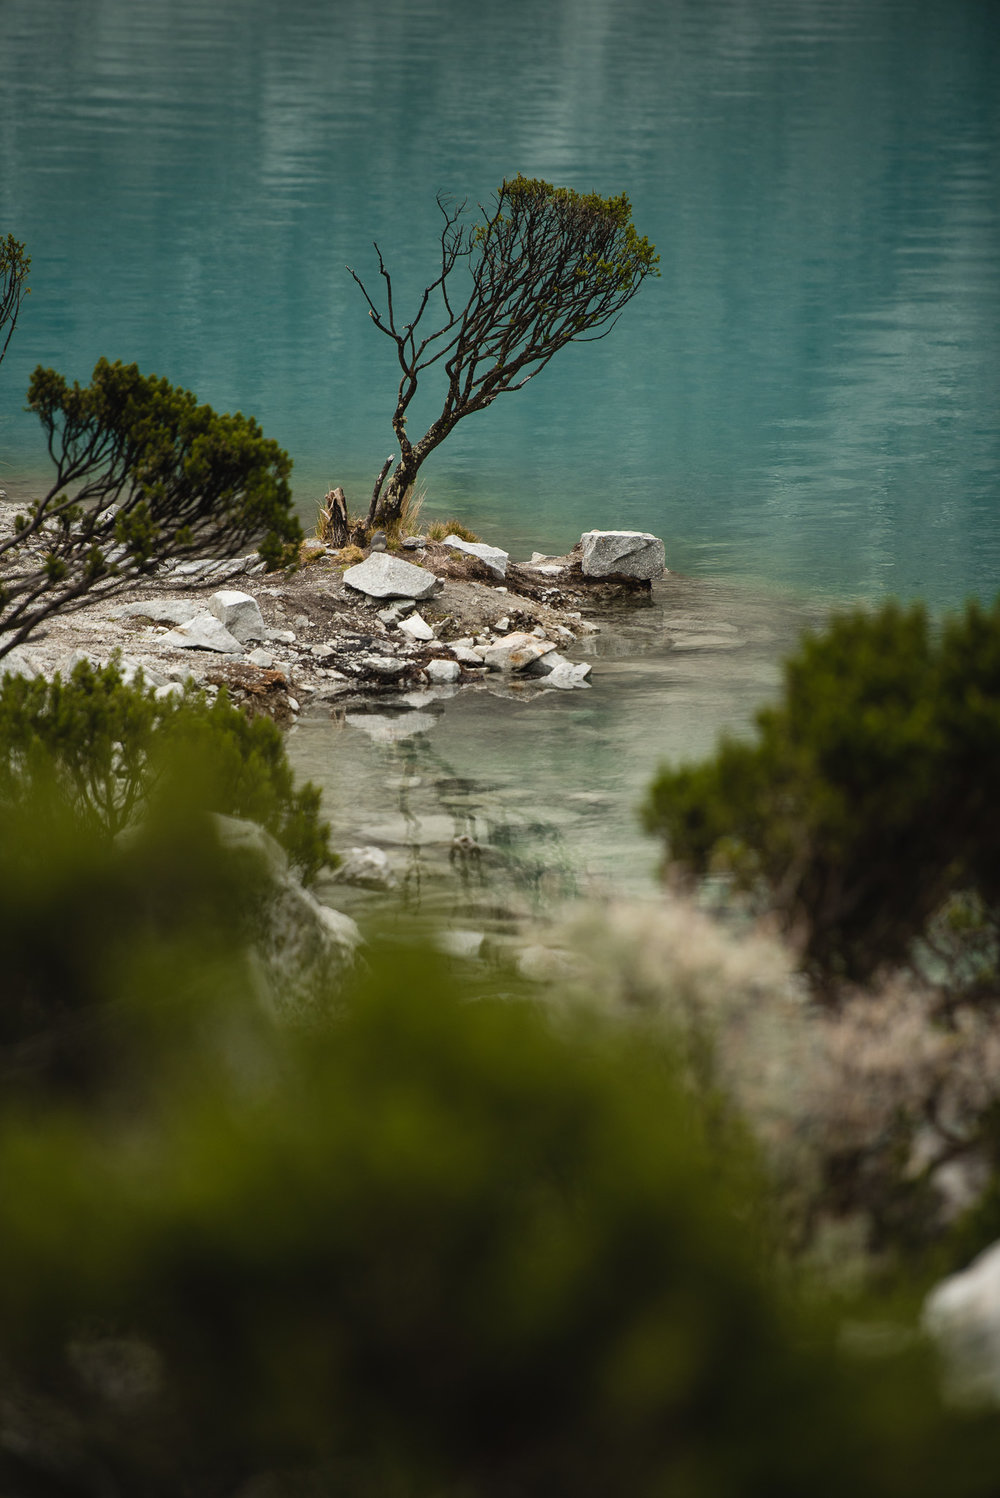 plants in a turquoise lake